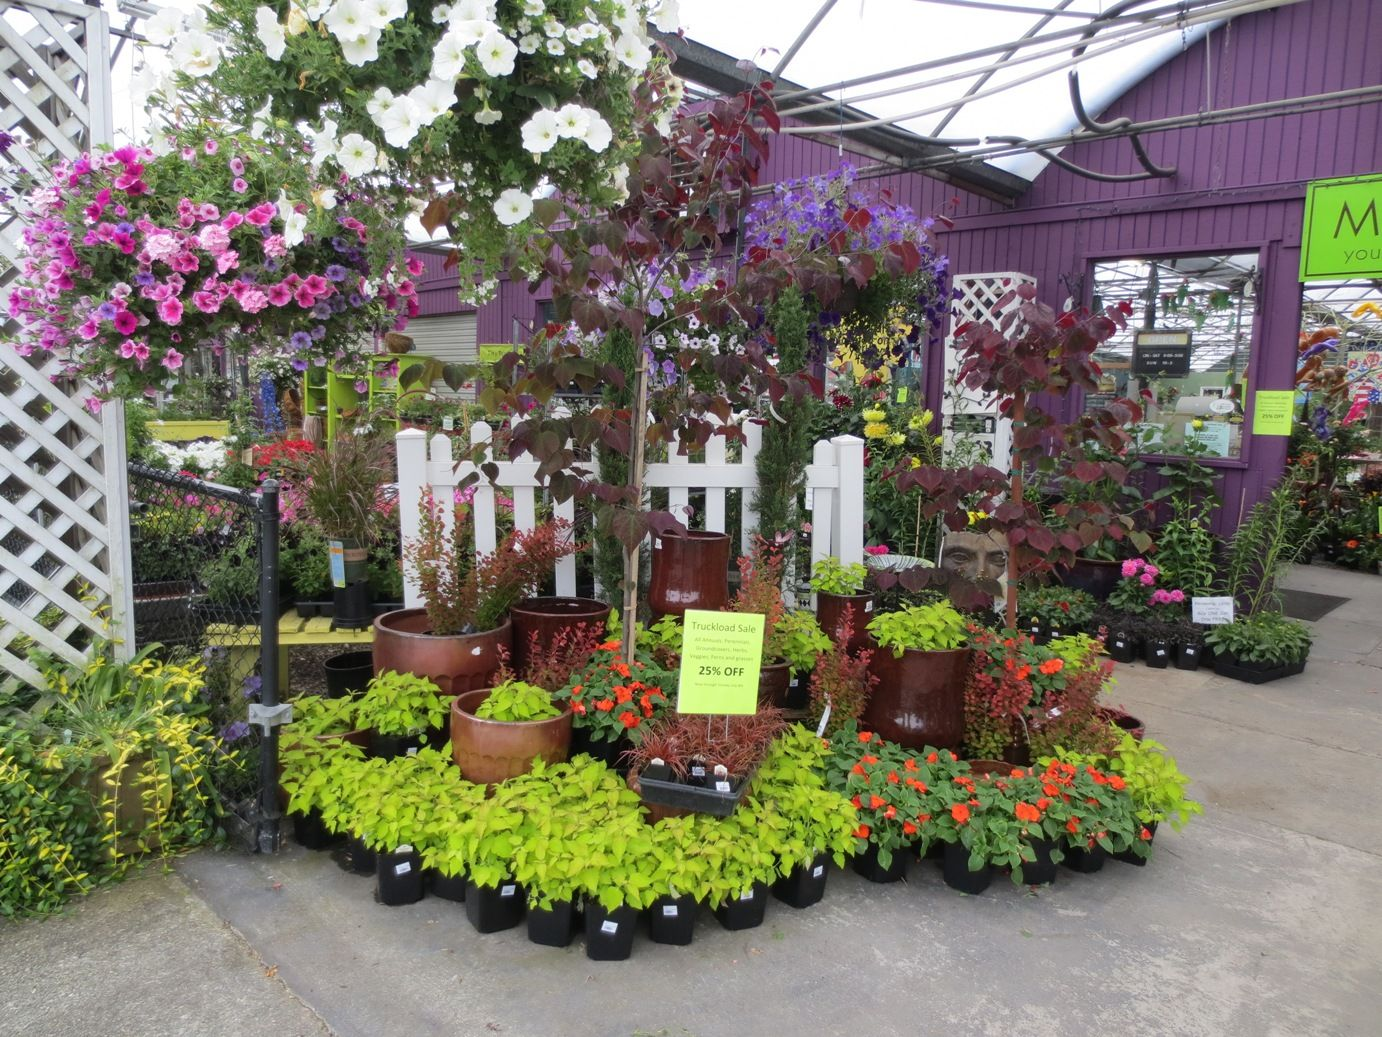 Garden Center Displays, Garden